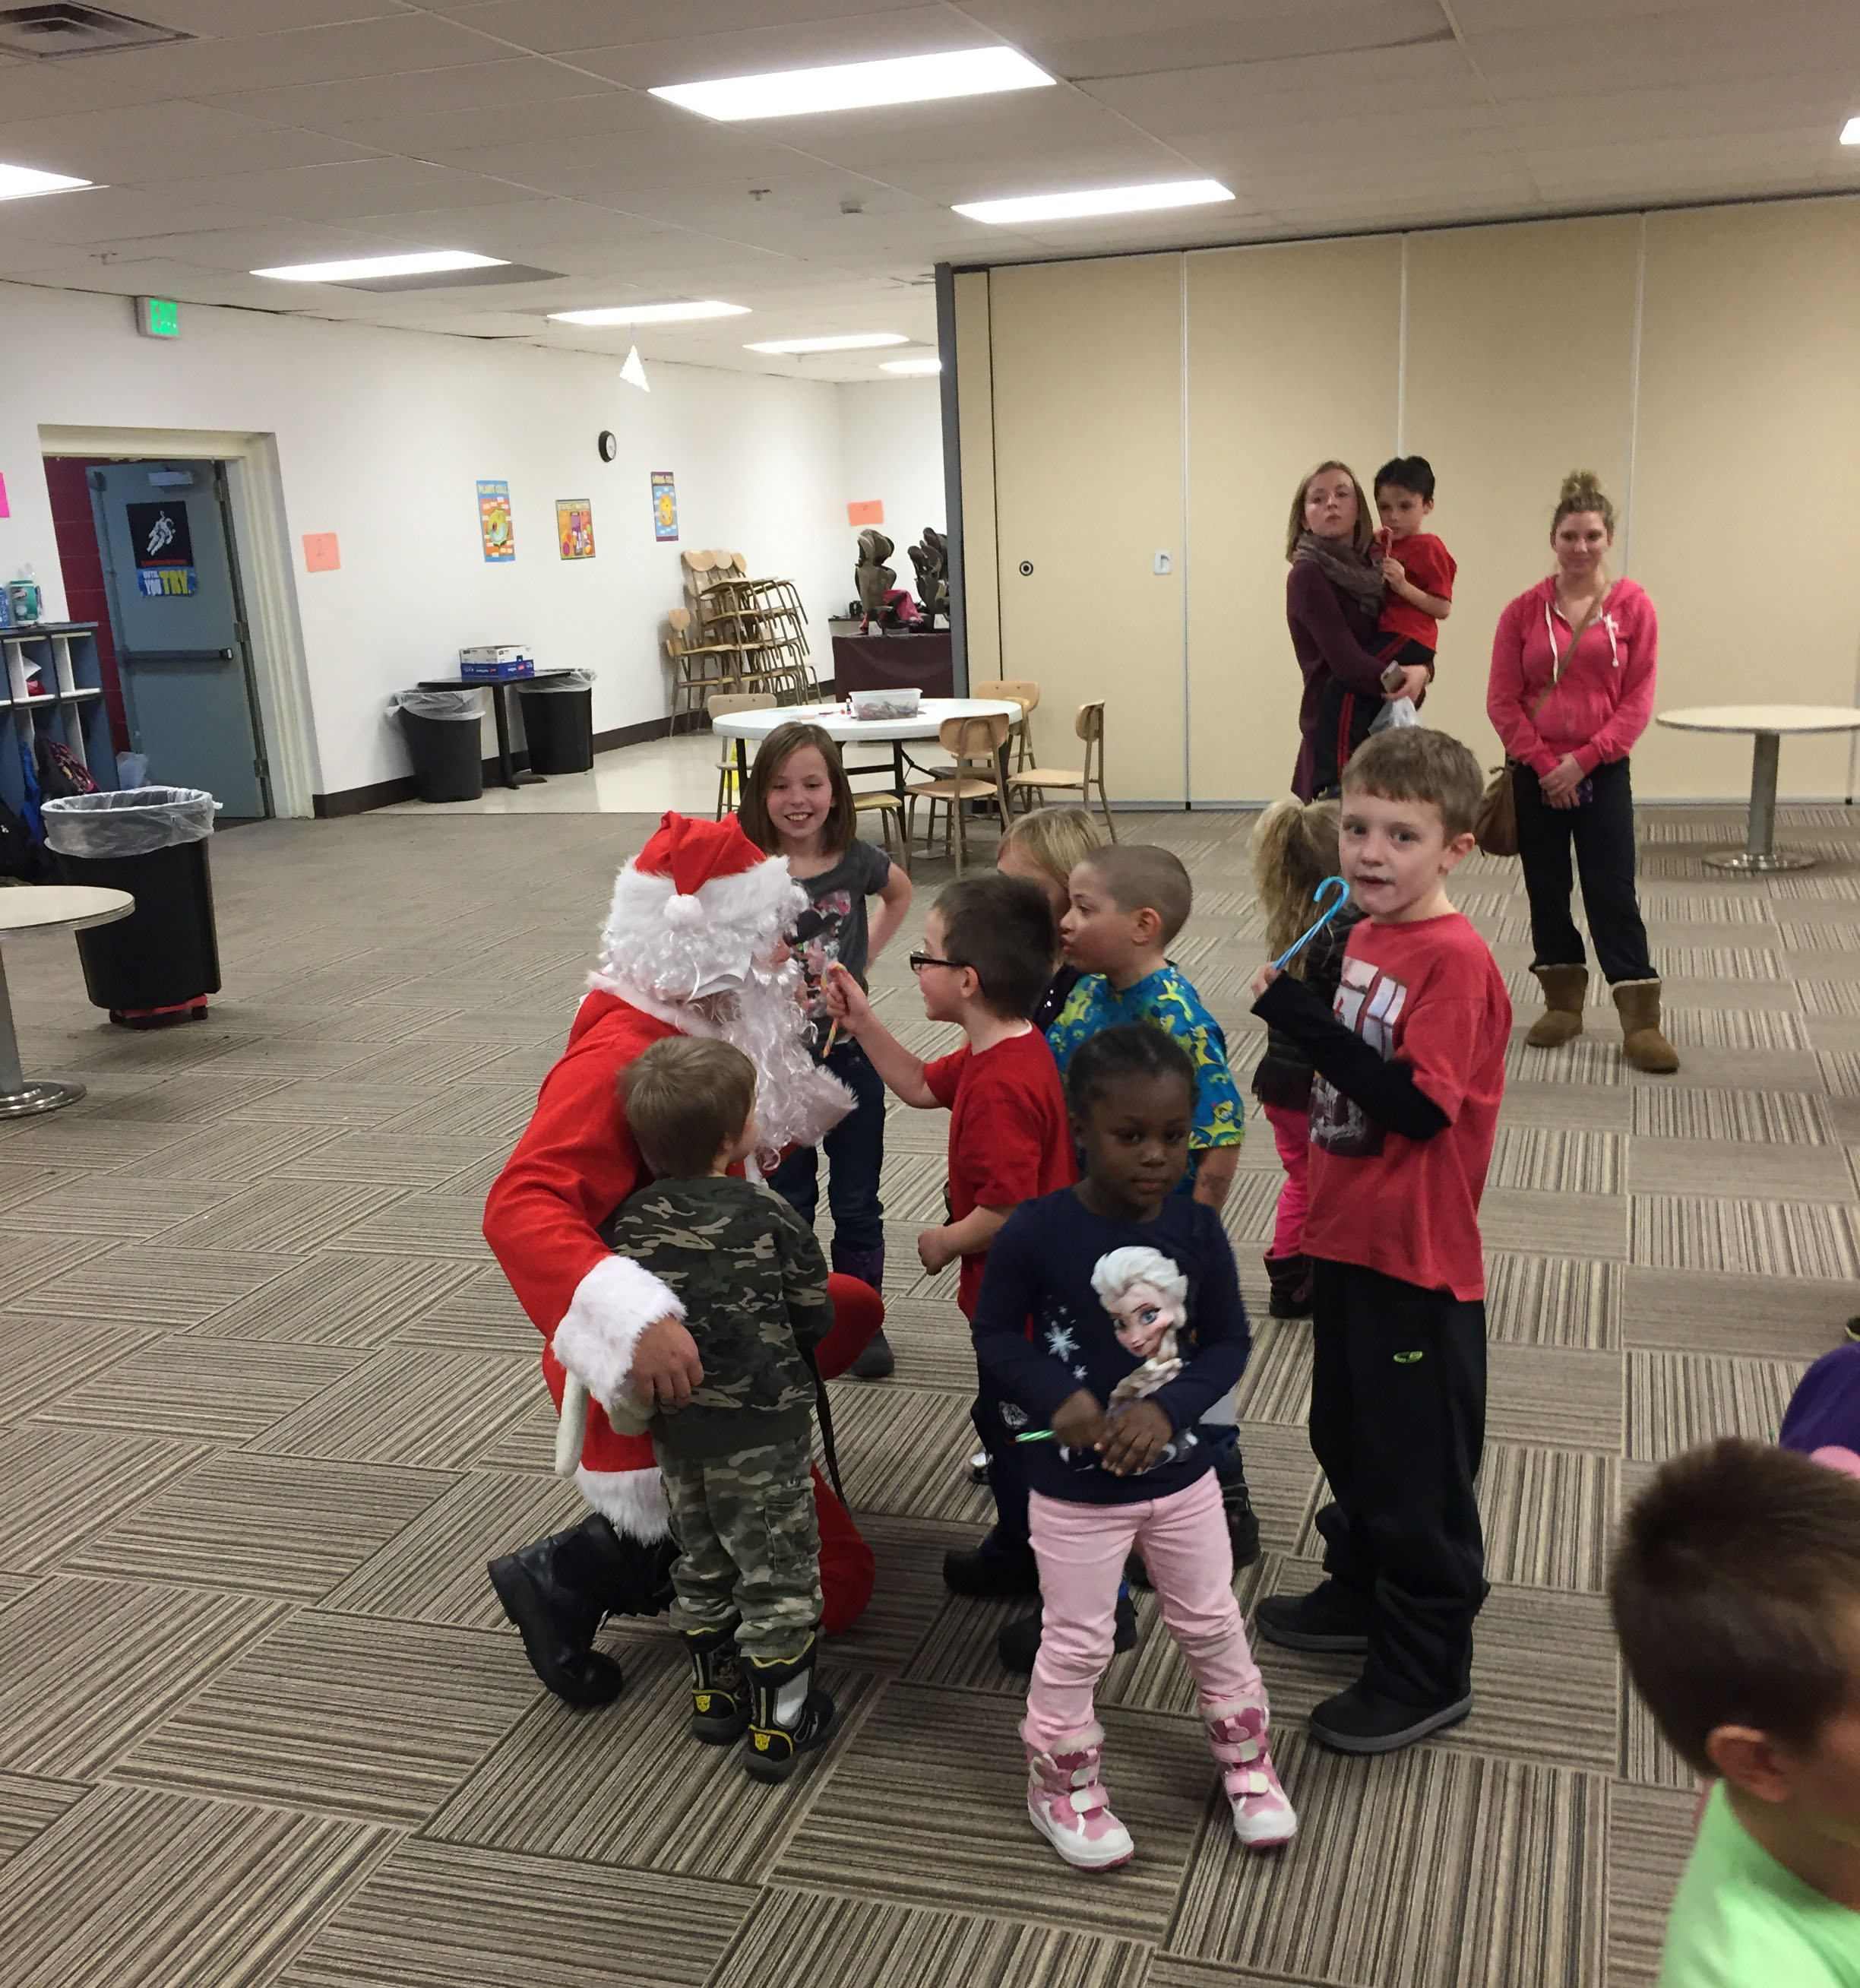 After the reading was finished, the kids enjoyed a meet and greet with Santa.